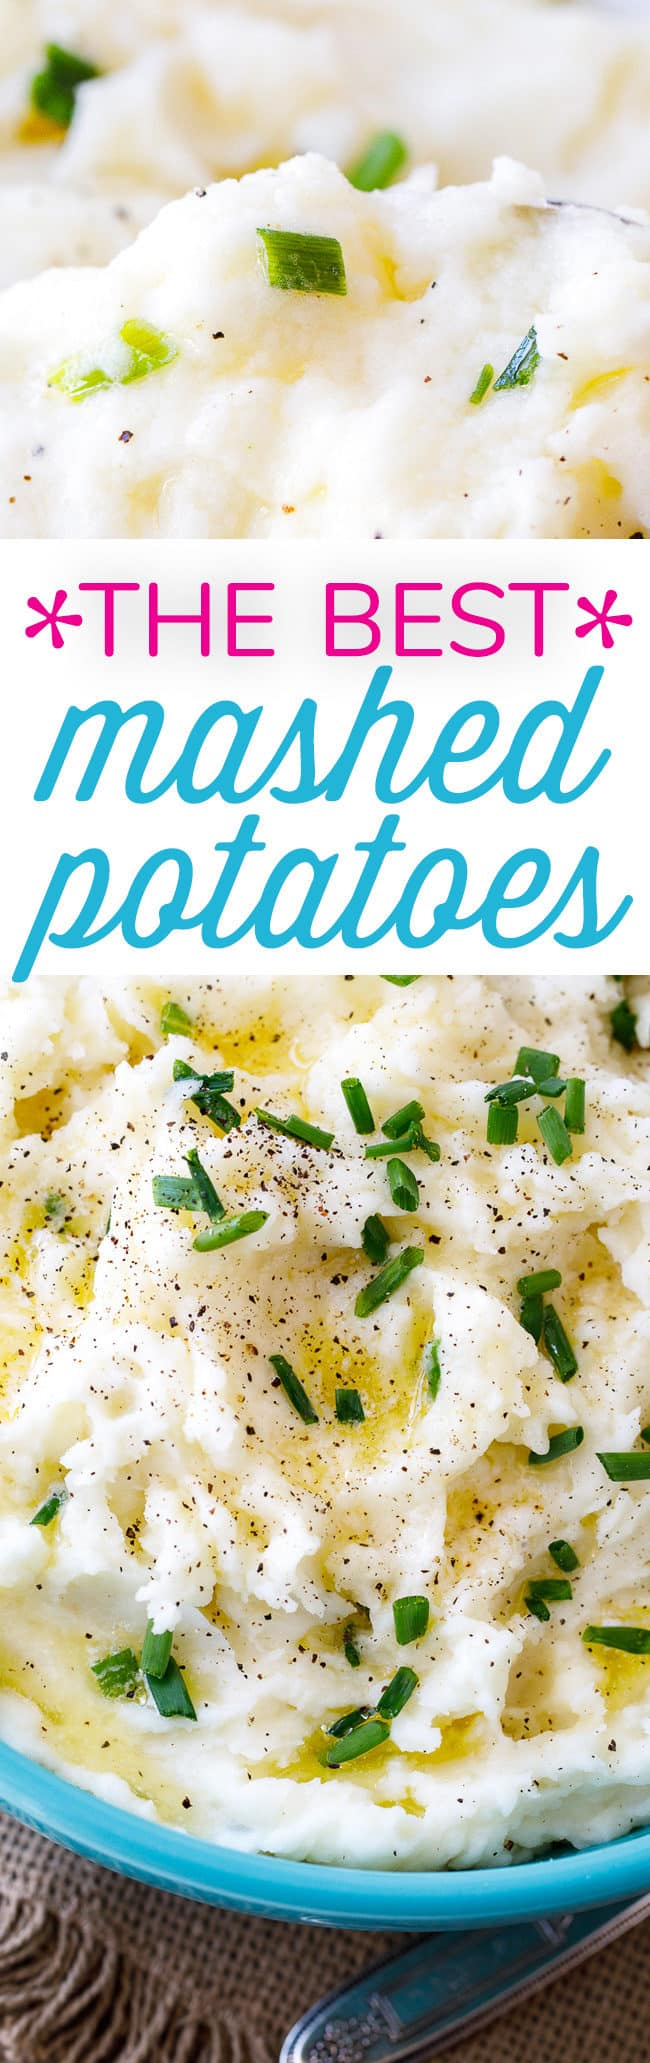 The Best Mashed Potatoes Recipe - These mashed potatoes are simple, creamy and quite frankly, the best!